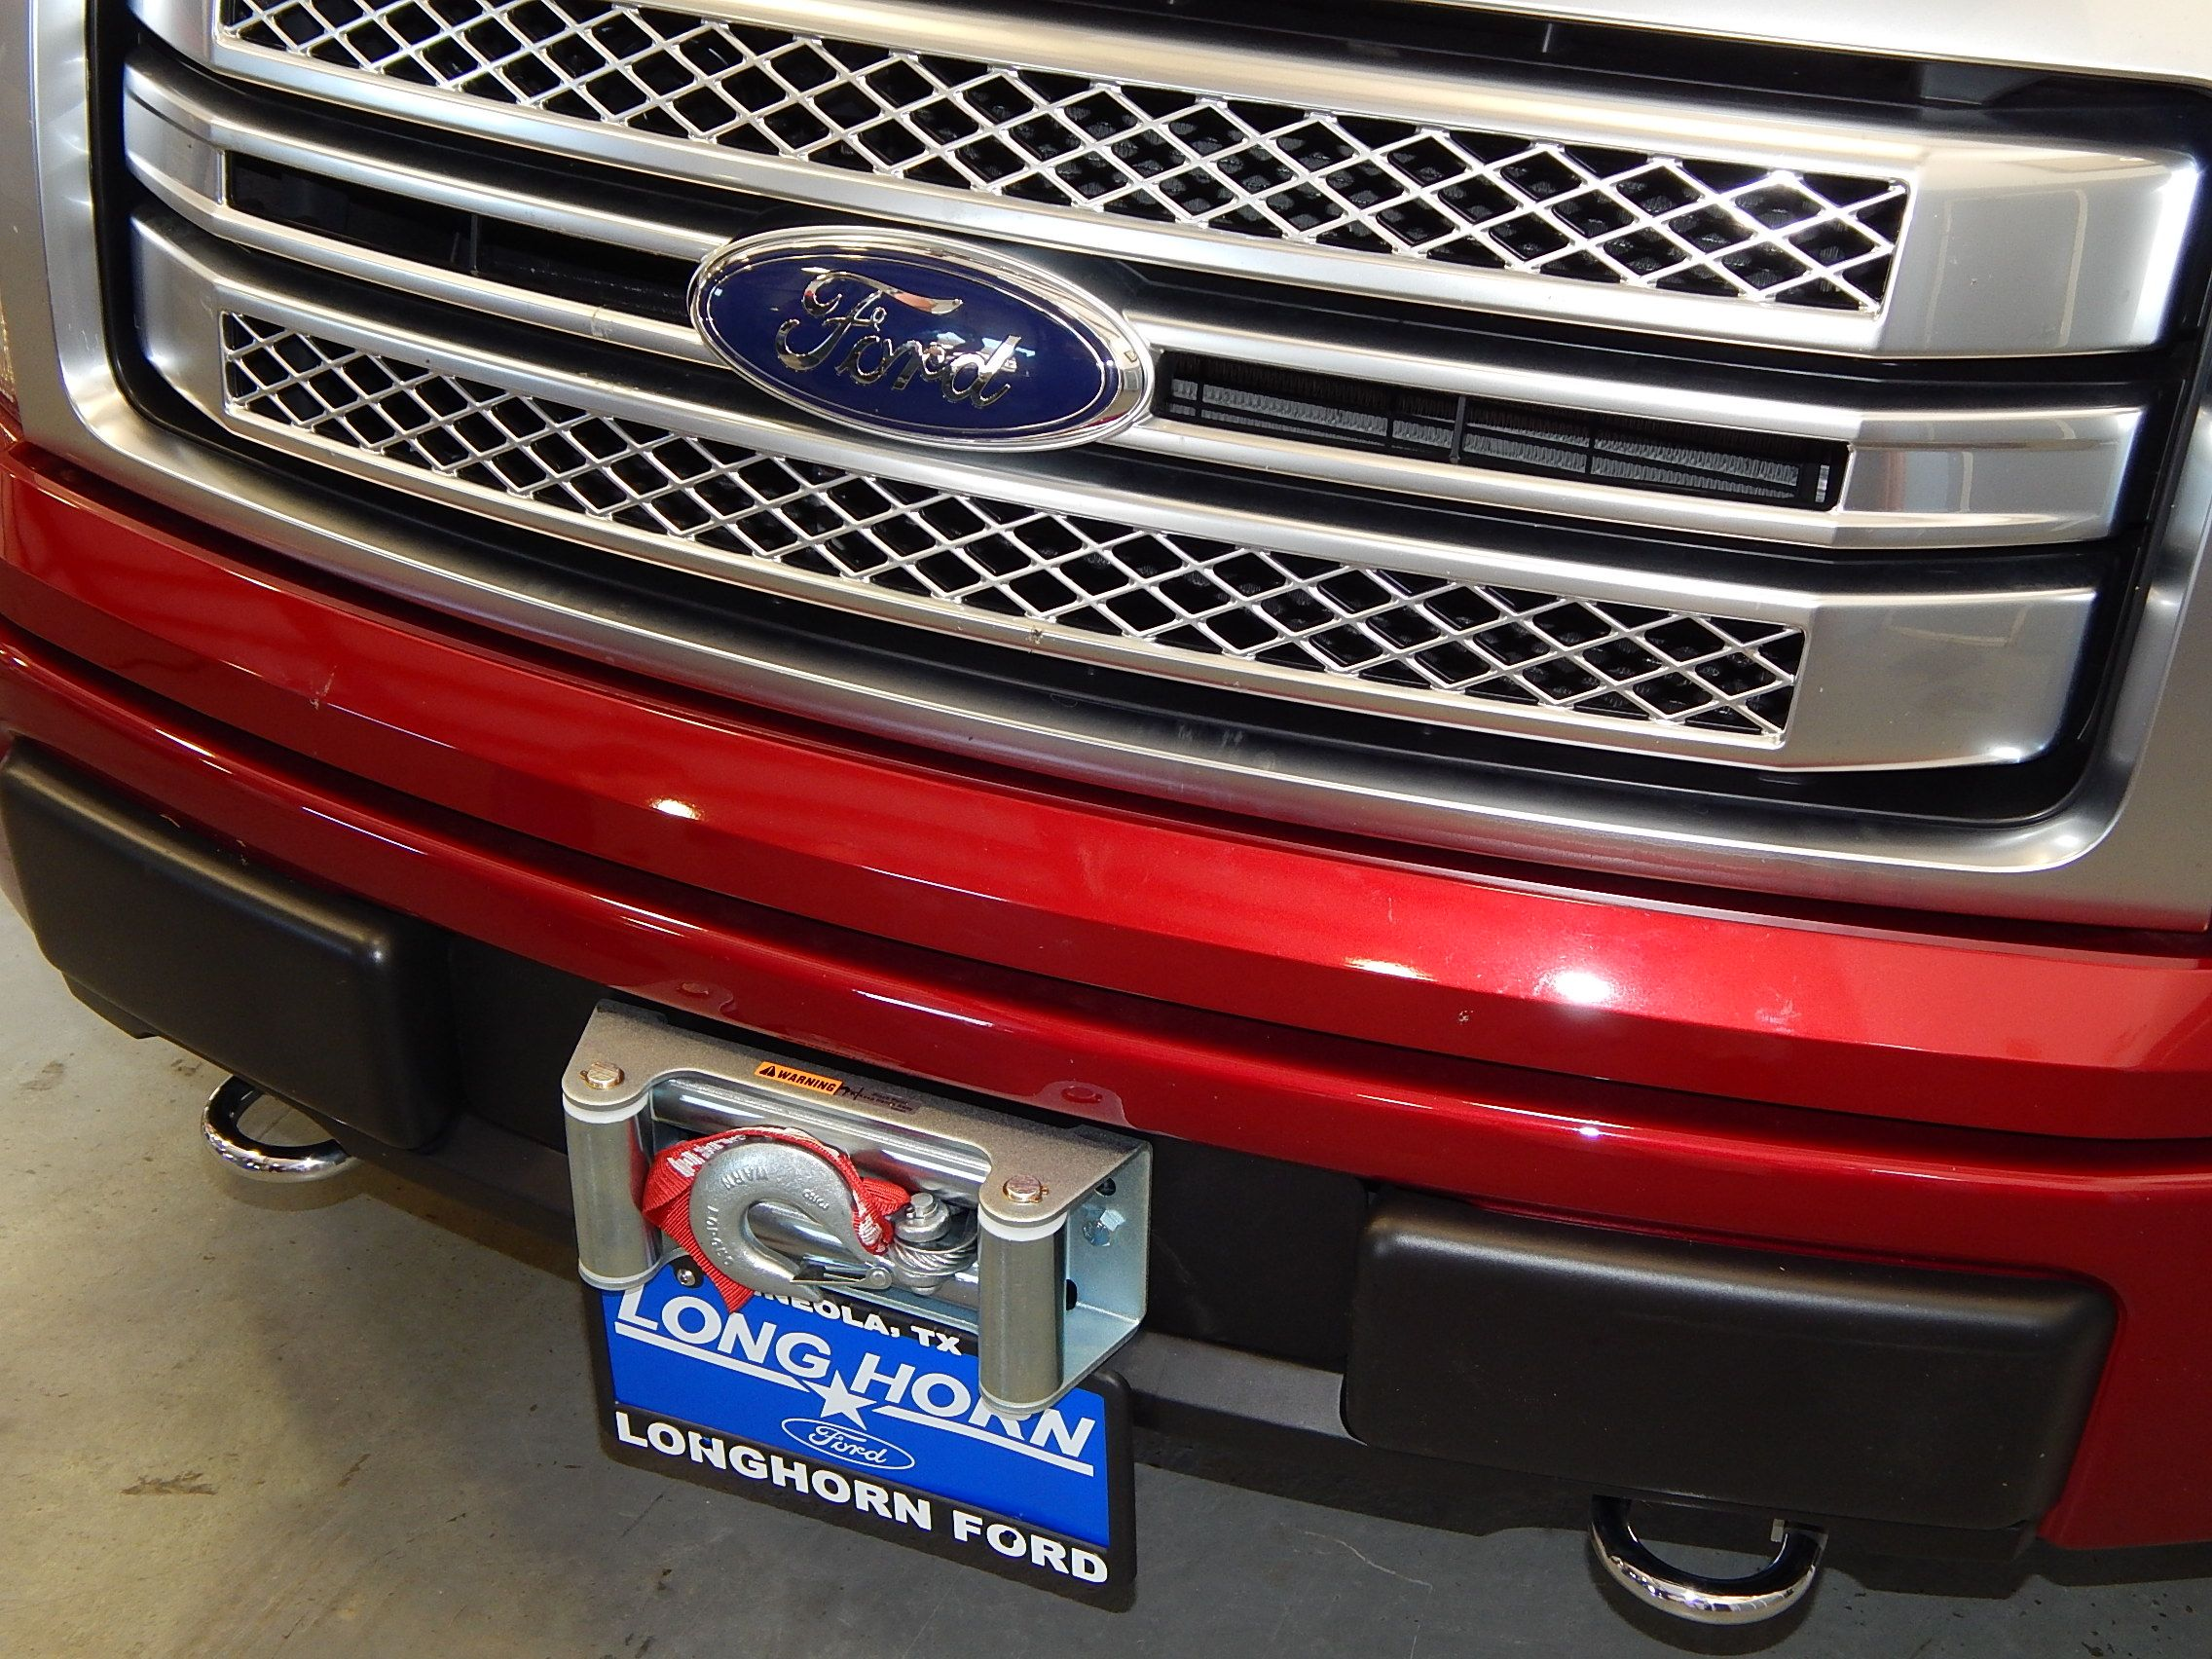 hidden winch installation on a ford f150 with a v8 engine the warn 9 5cti winch is hidden behind the front bumper leaving only the tow hook and roller  [ 2272 x 1704 Pixel ]